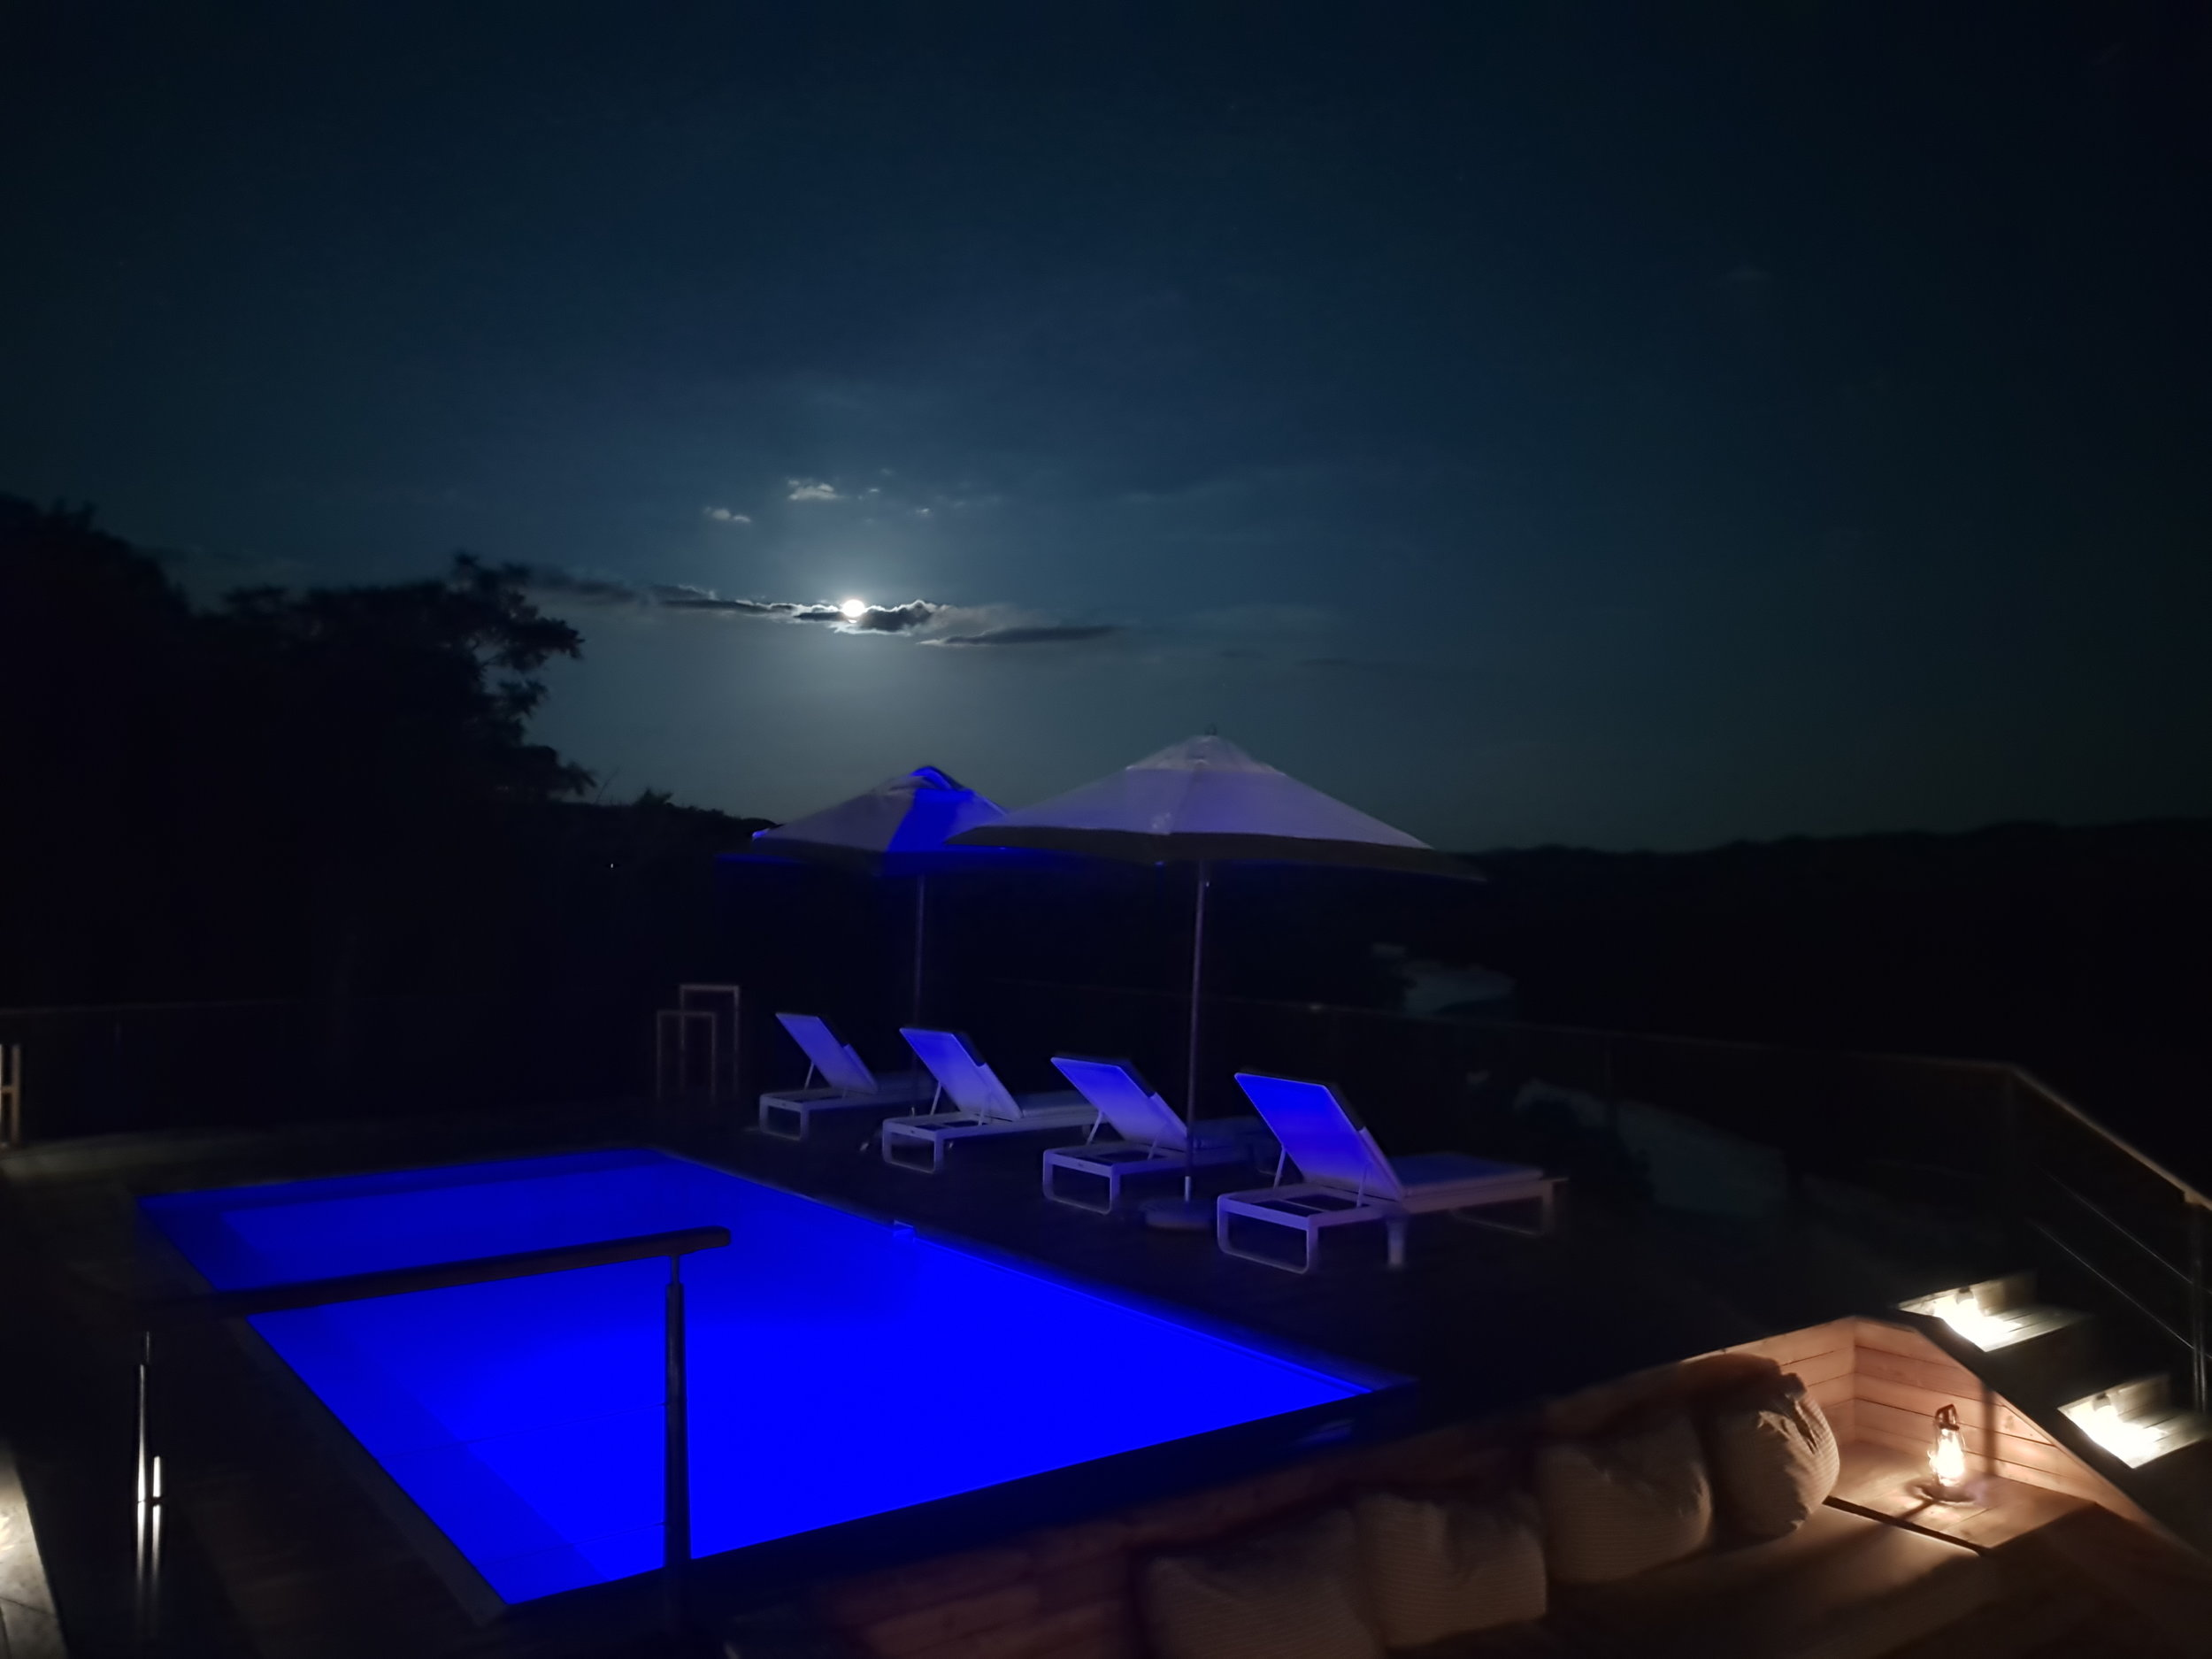 FULL MOON PRESENTS: Time for a full moon swim at Pel's Post.